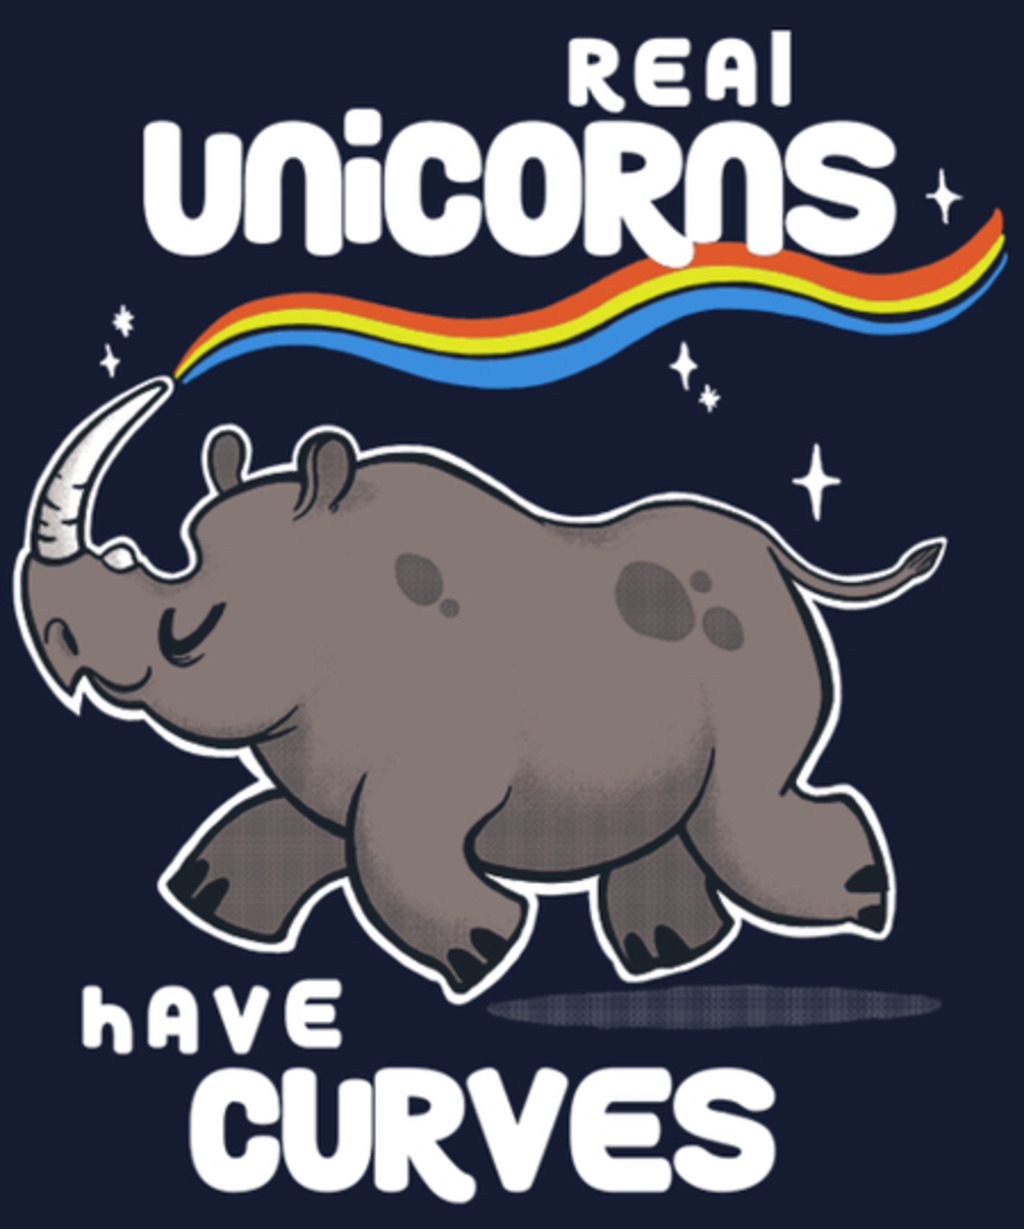 Qwertee: Real unicorns